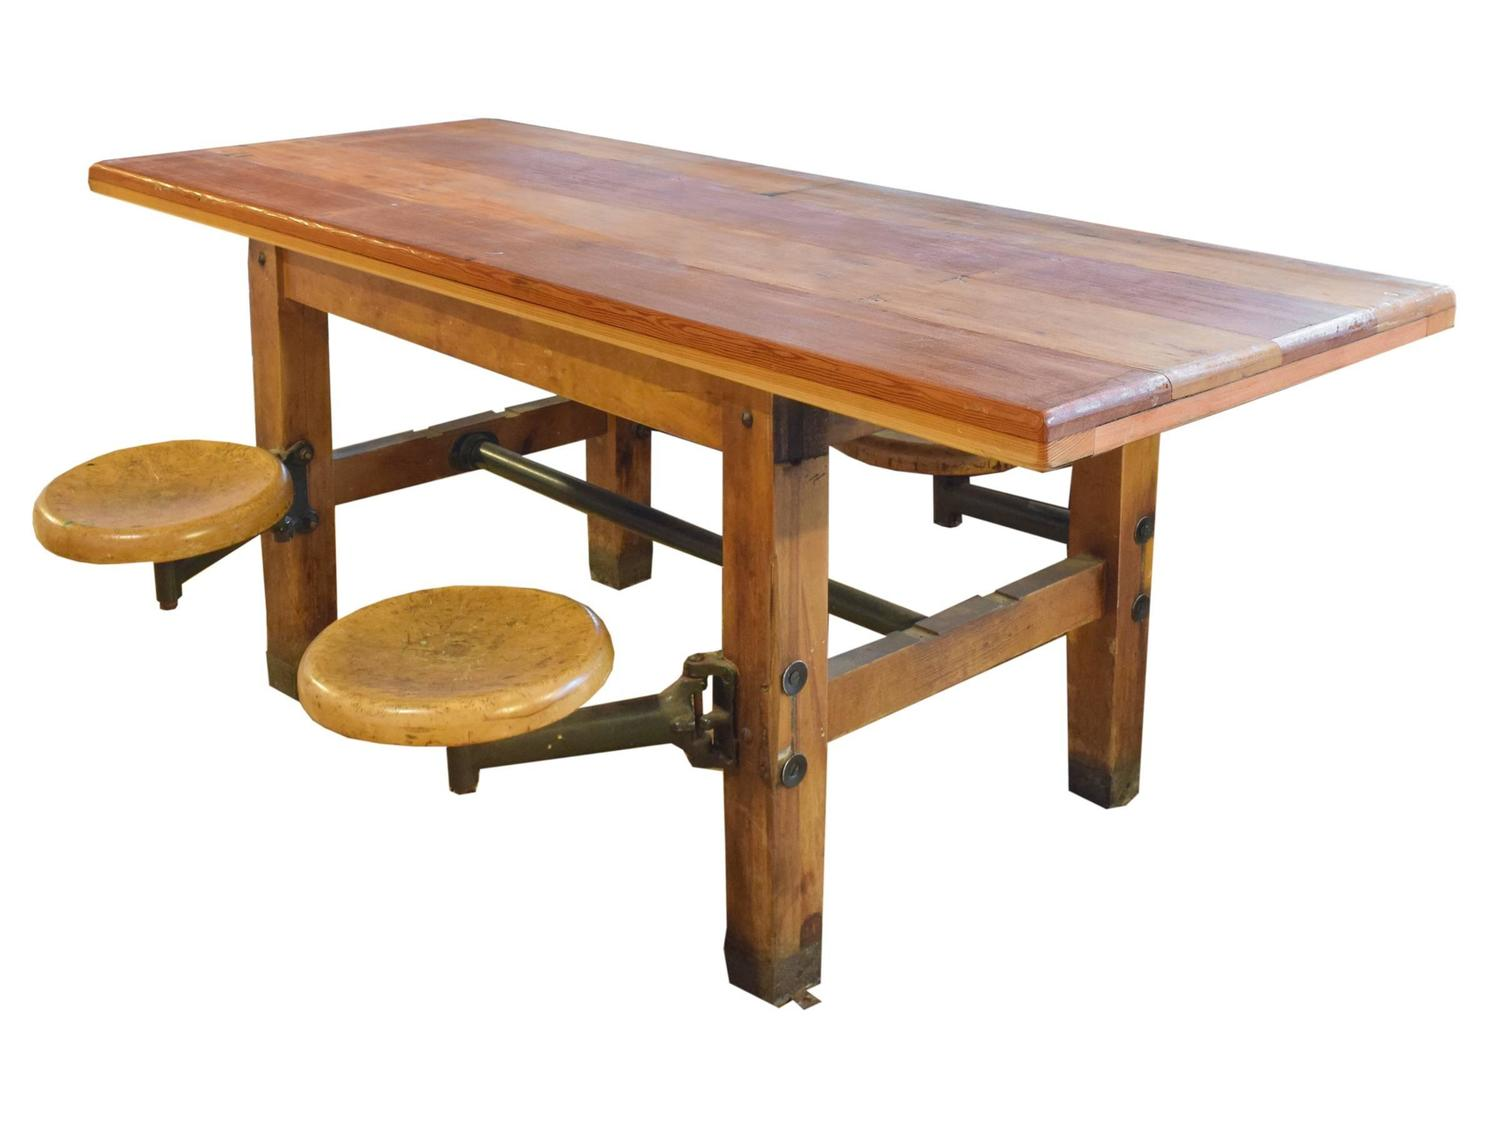 swing chair dining table toddler rocking with arm seats at 1stdibs